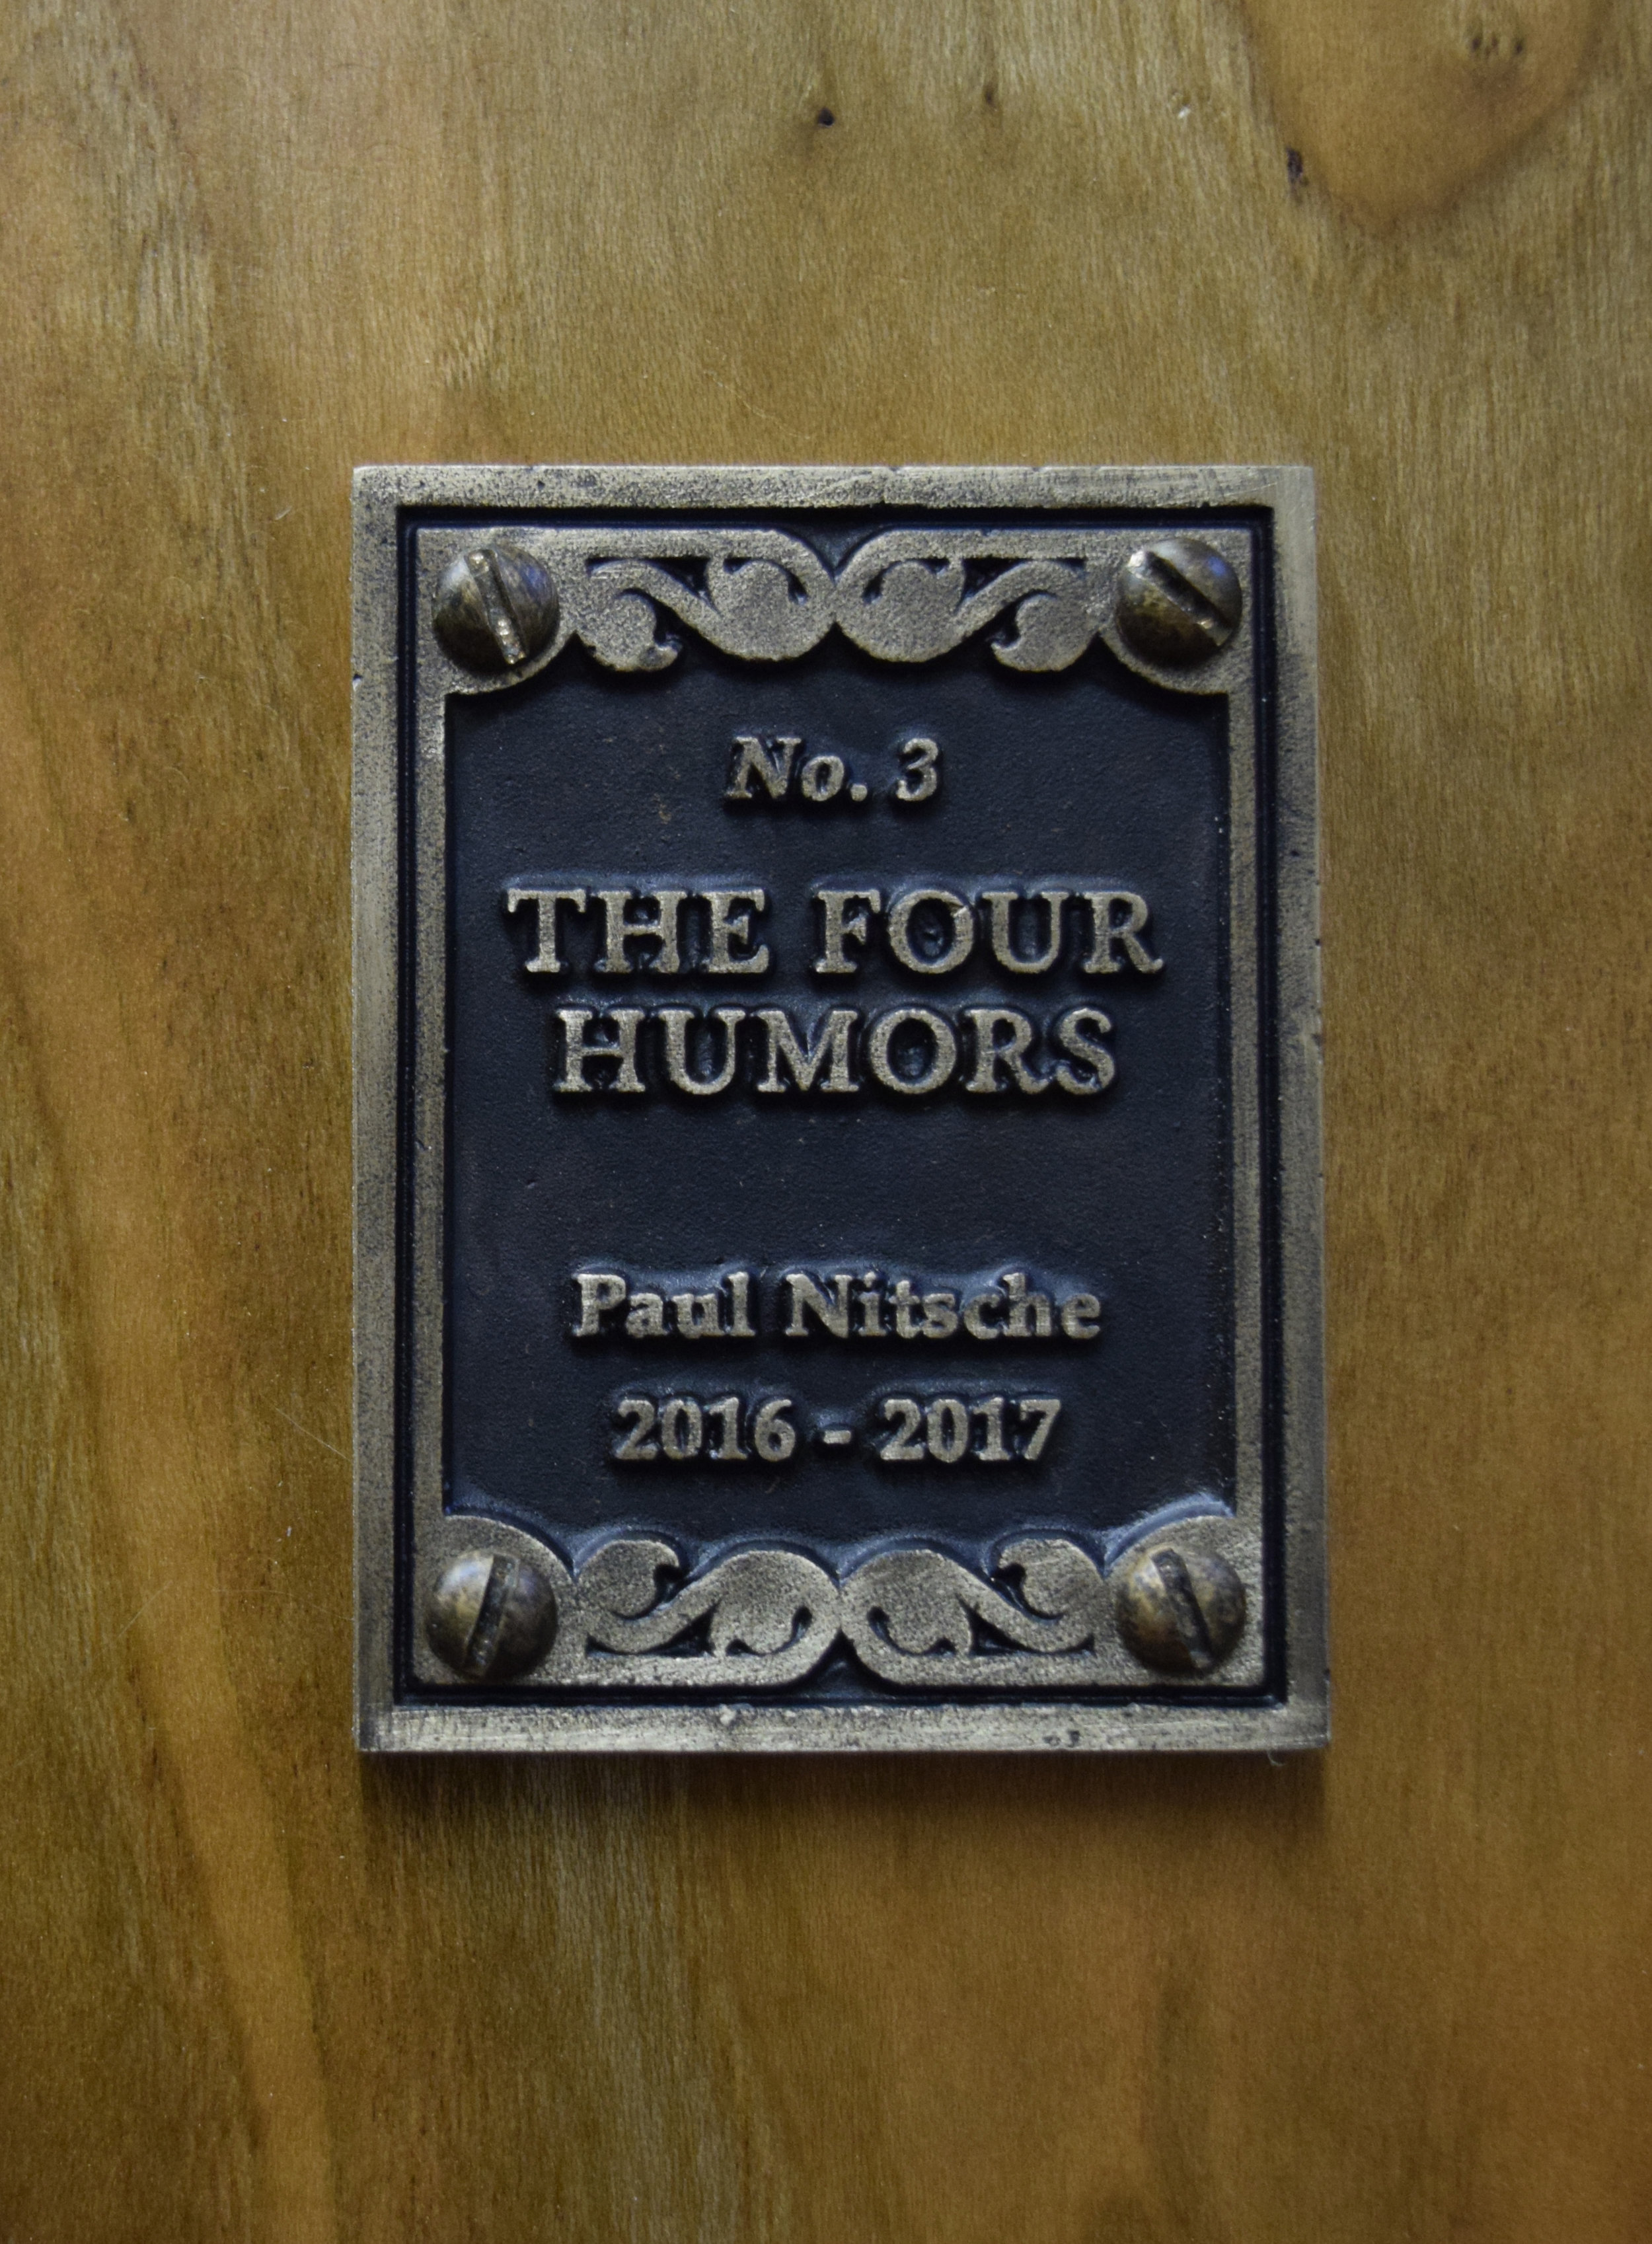 The Four Humors, Bronze Plate Detail.